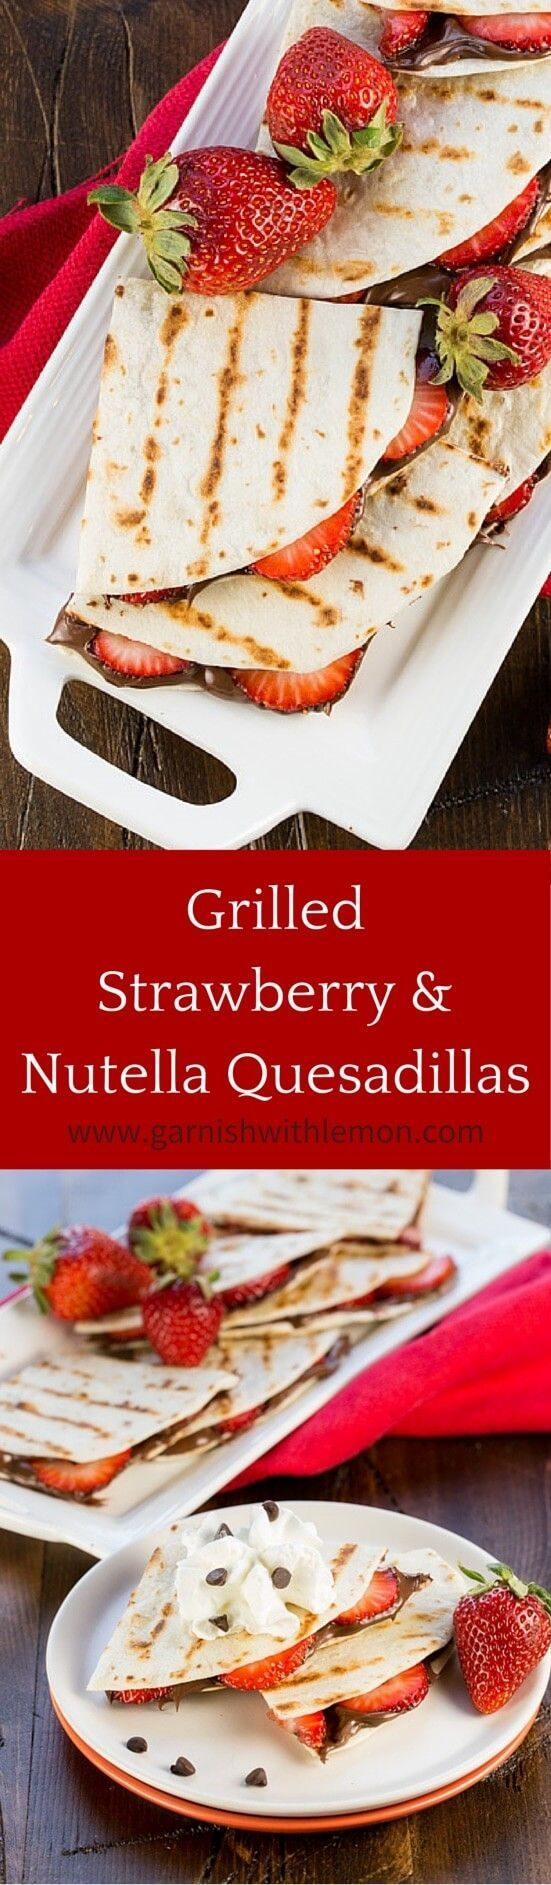 Need a last minute dessert? These 5-minute Grilled Strawberry Nutella Quesadillas are guaranteed crowd-pleasers! ~ www.garnishwithle...